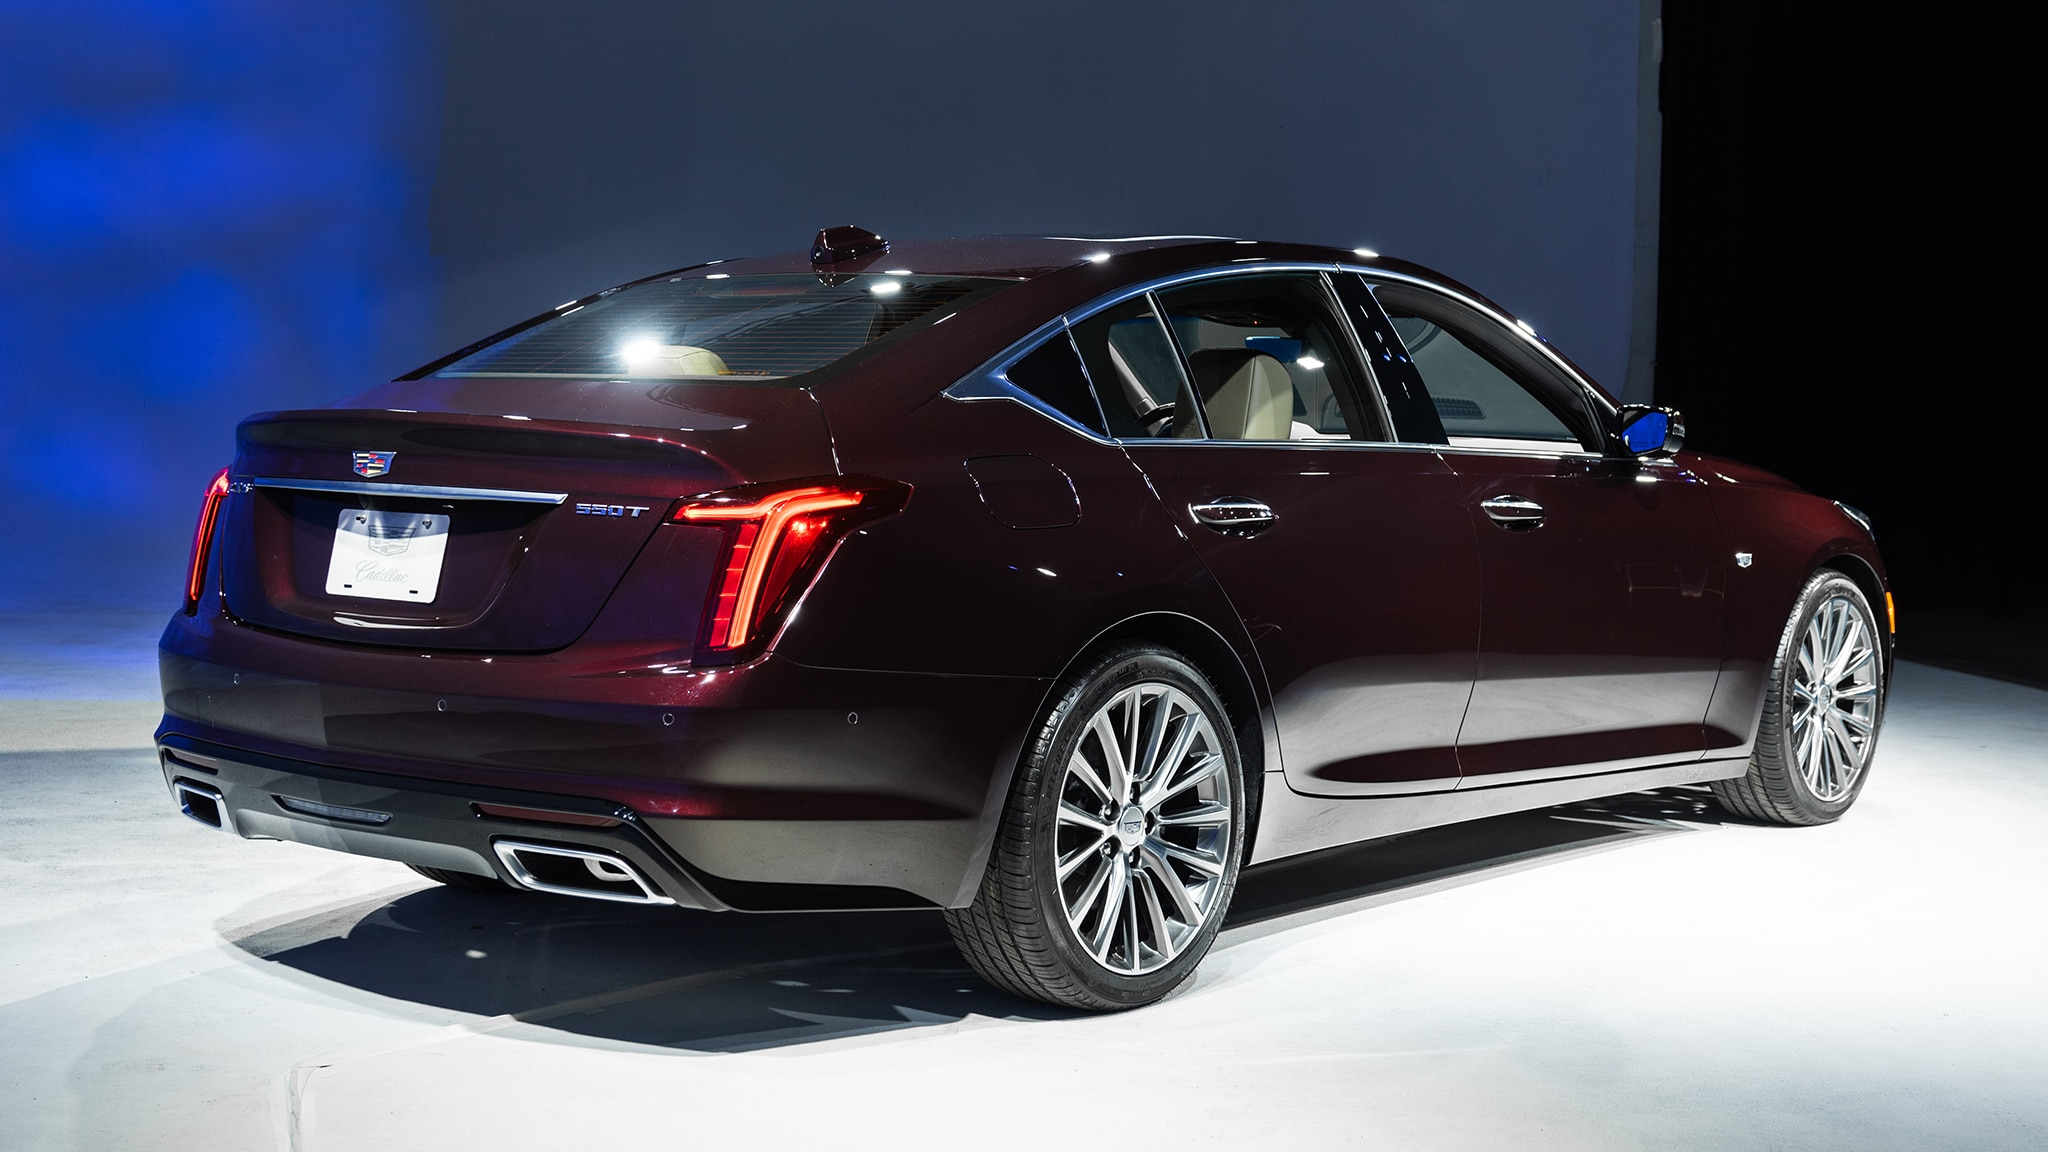 2020 cadillac ct5: stuff cadillac told us about its new